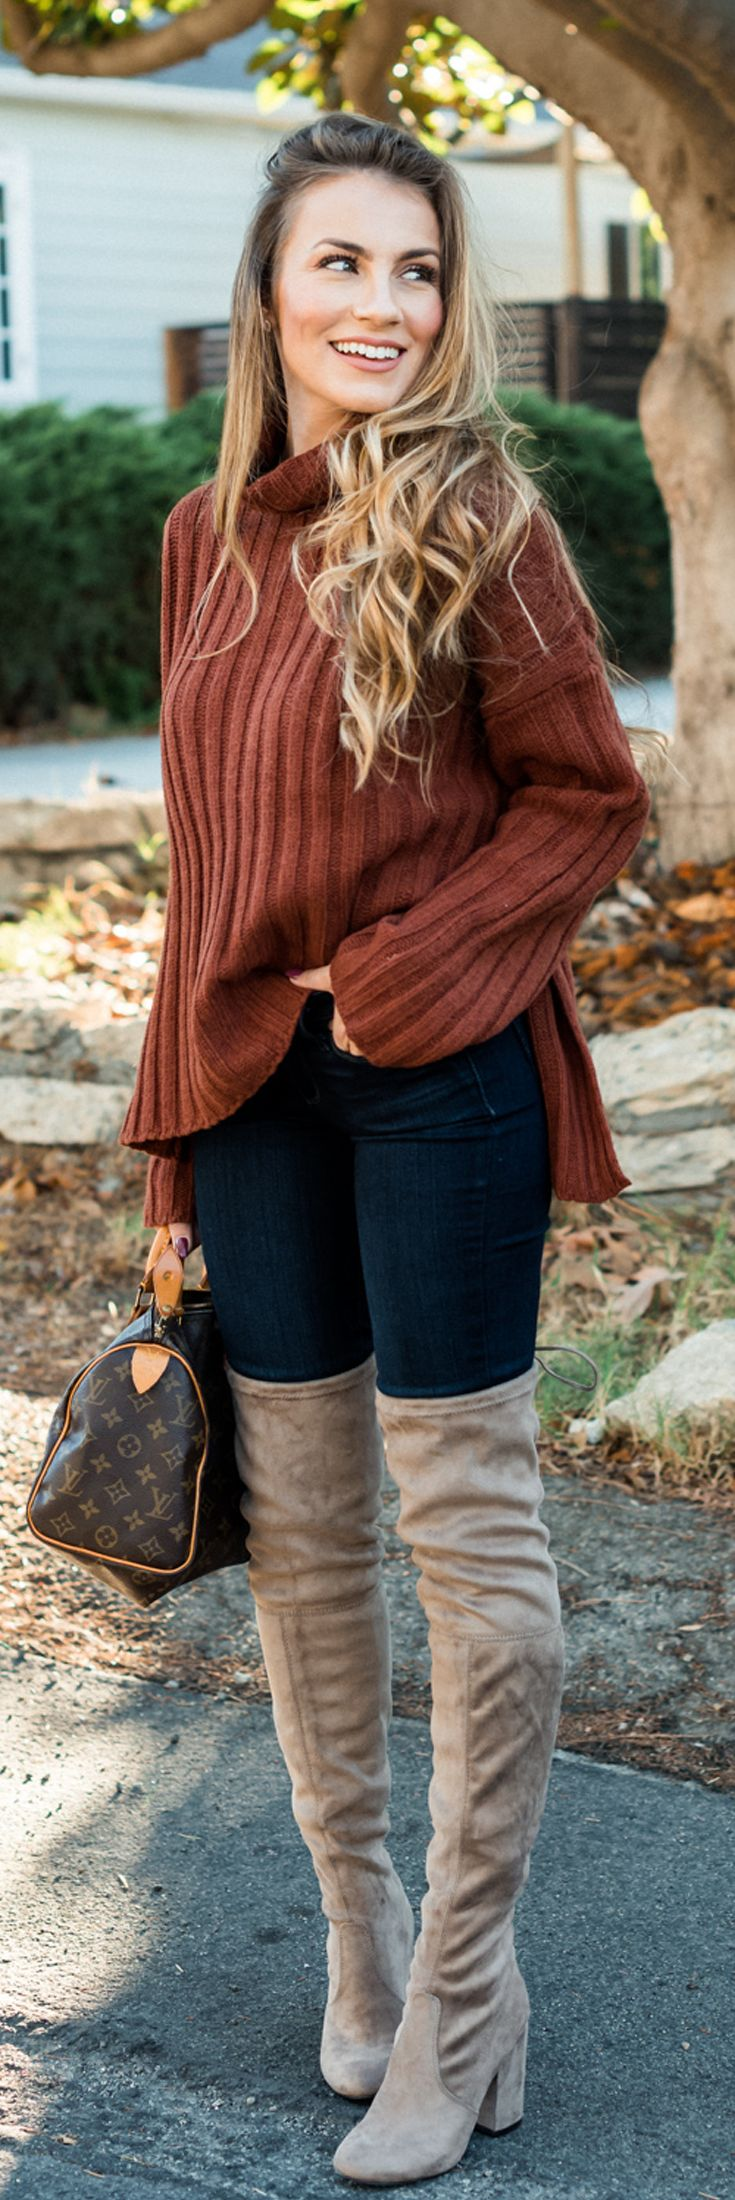 Fall Outfit I love - Brown sweater, blue jeans and Over the knee boots. #hellogorgeous